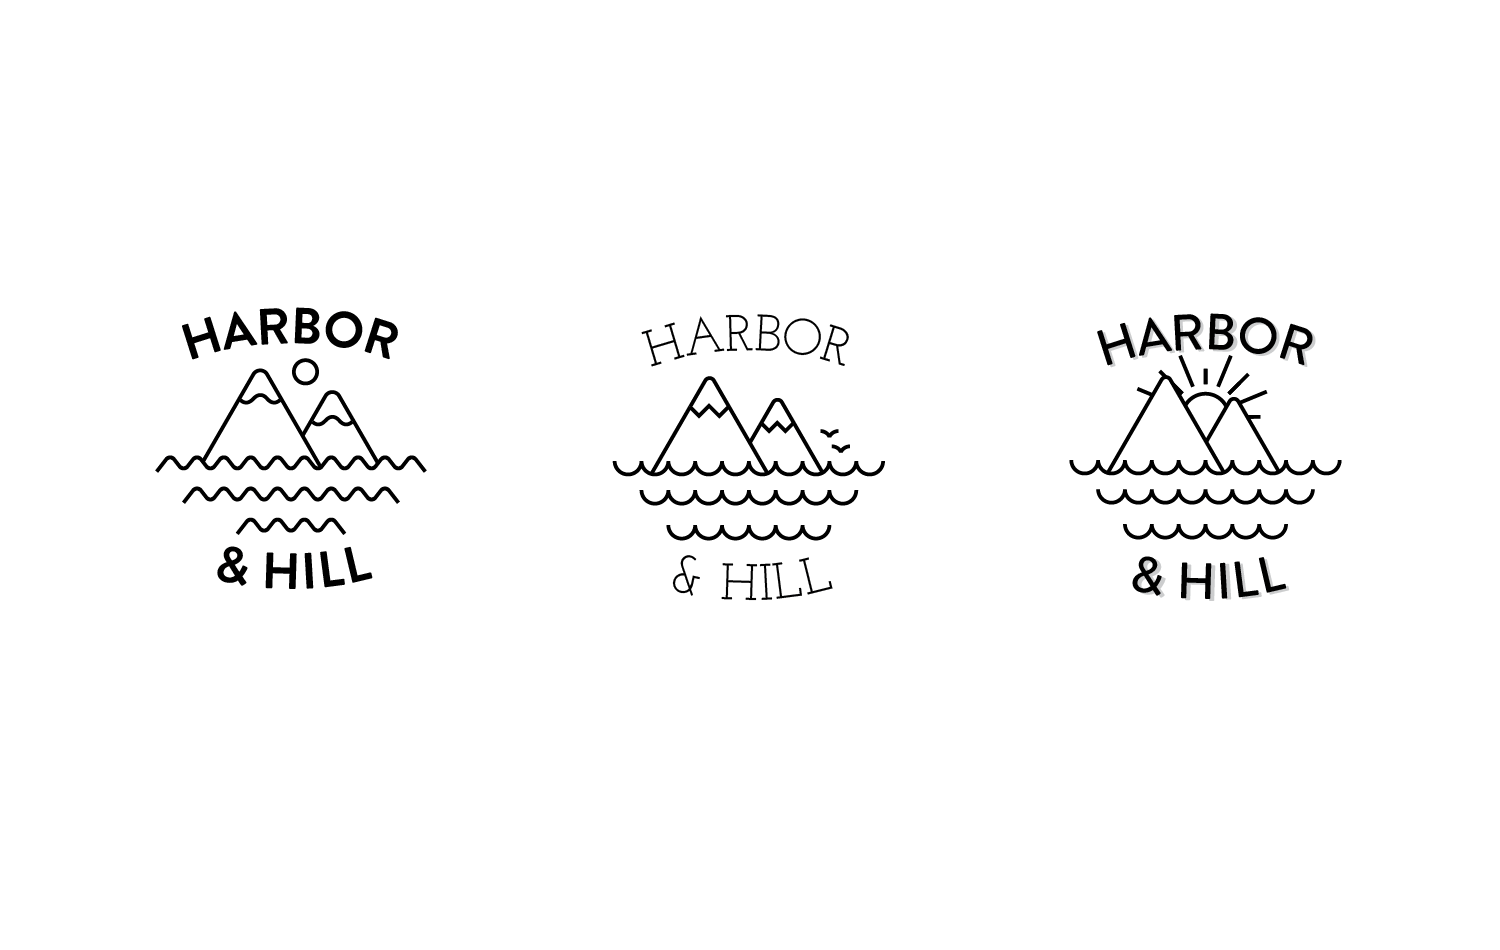 Harbor & Hill designs